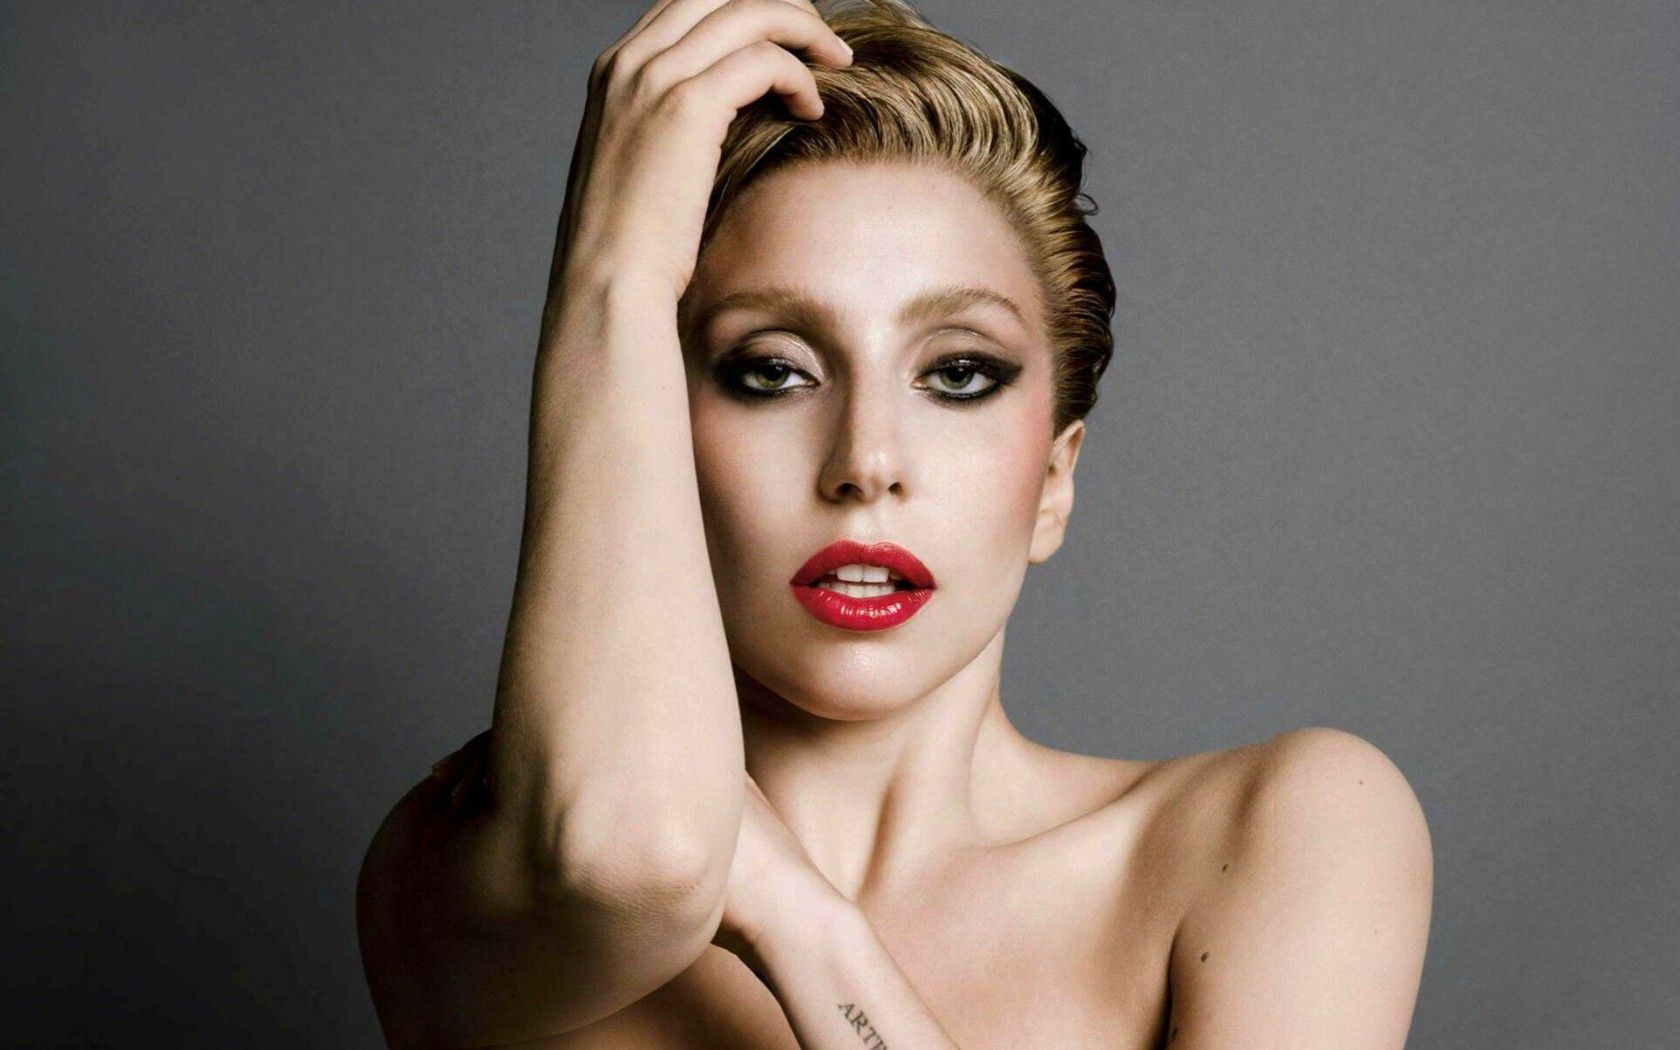 Top 4 Aspects of Lady Gaga That You Can Easily Copy and How - FeedZig